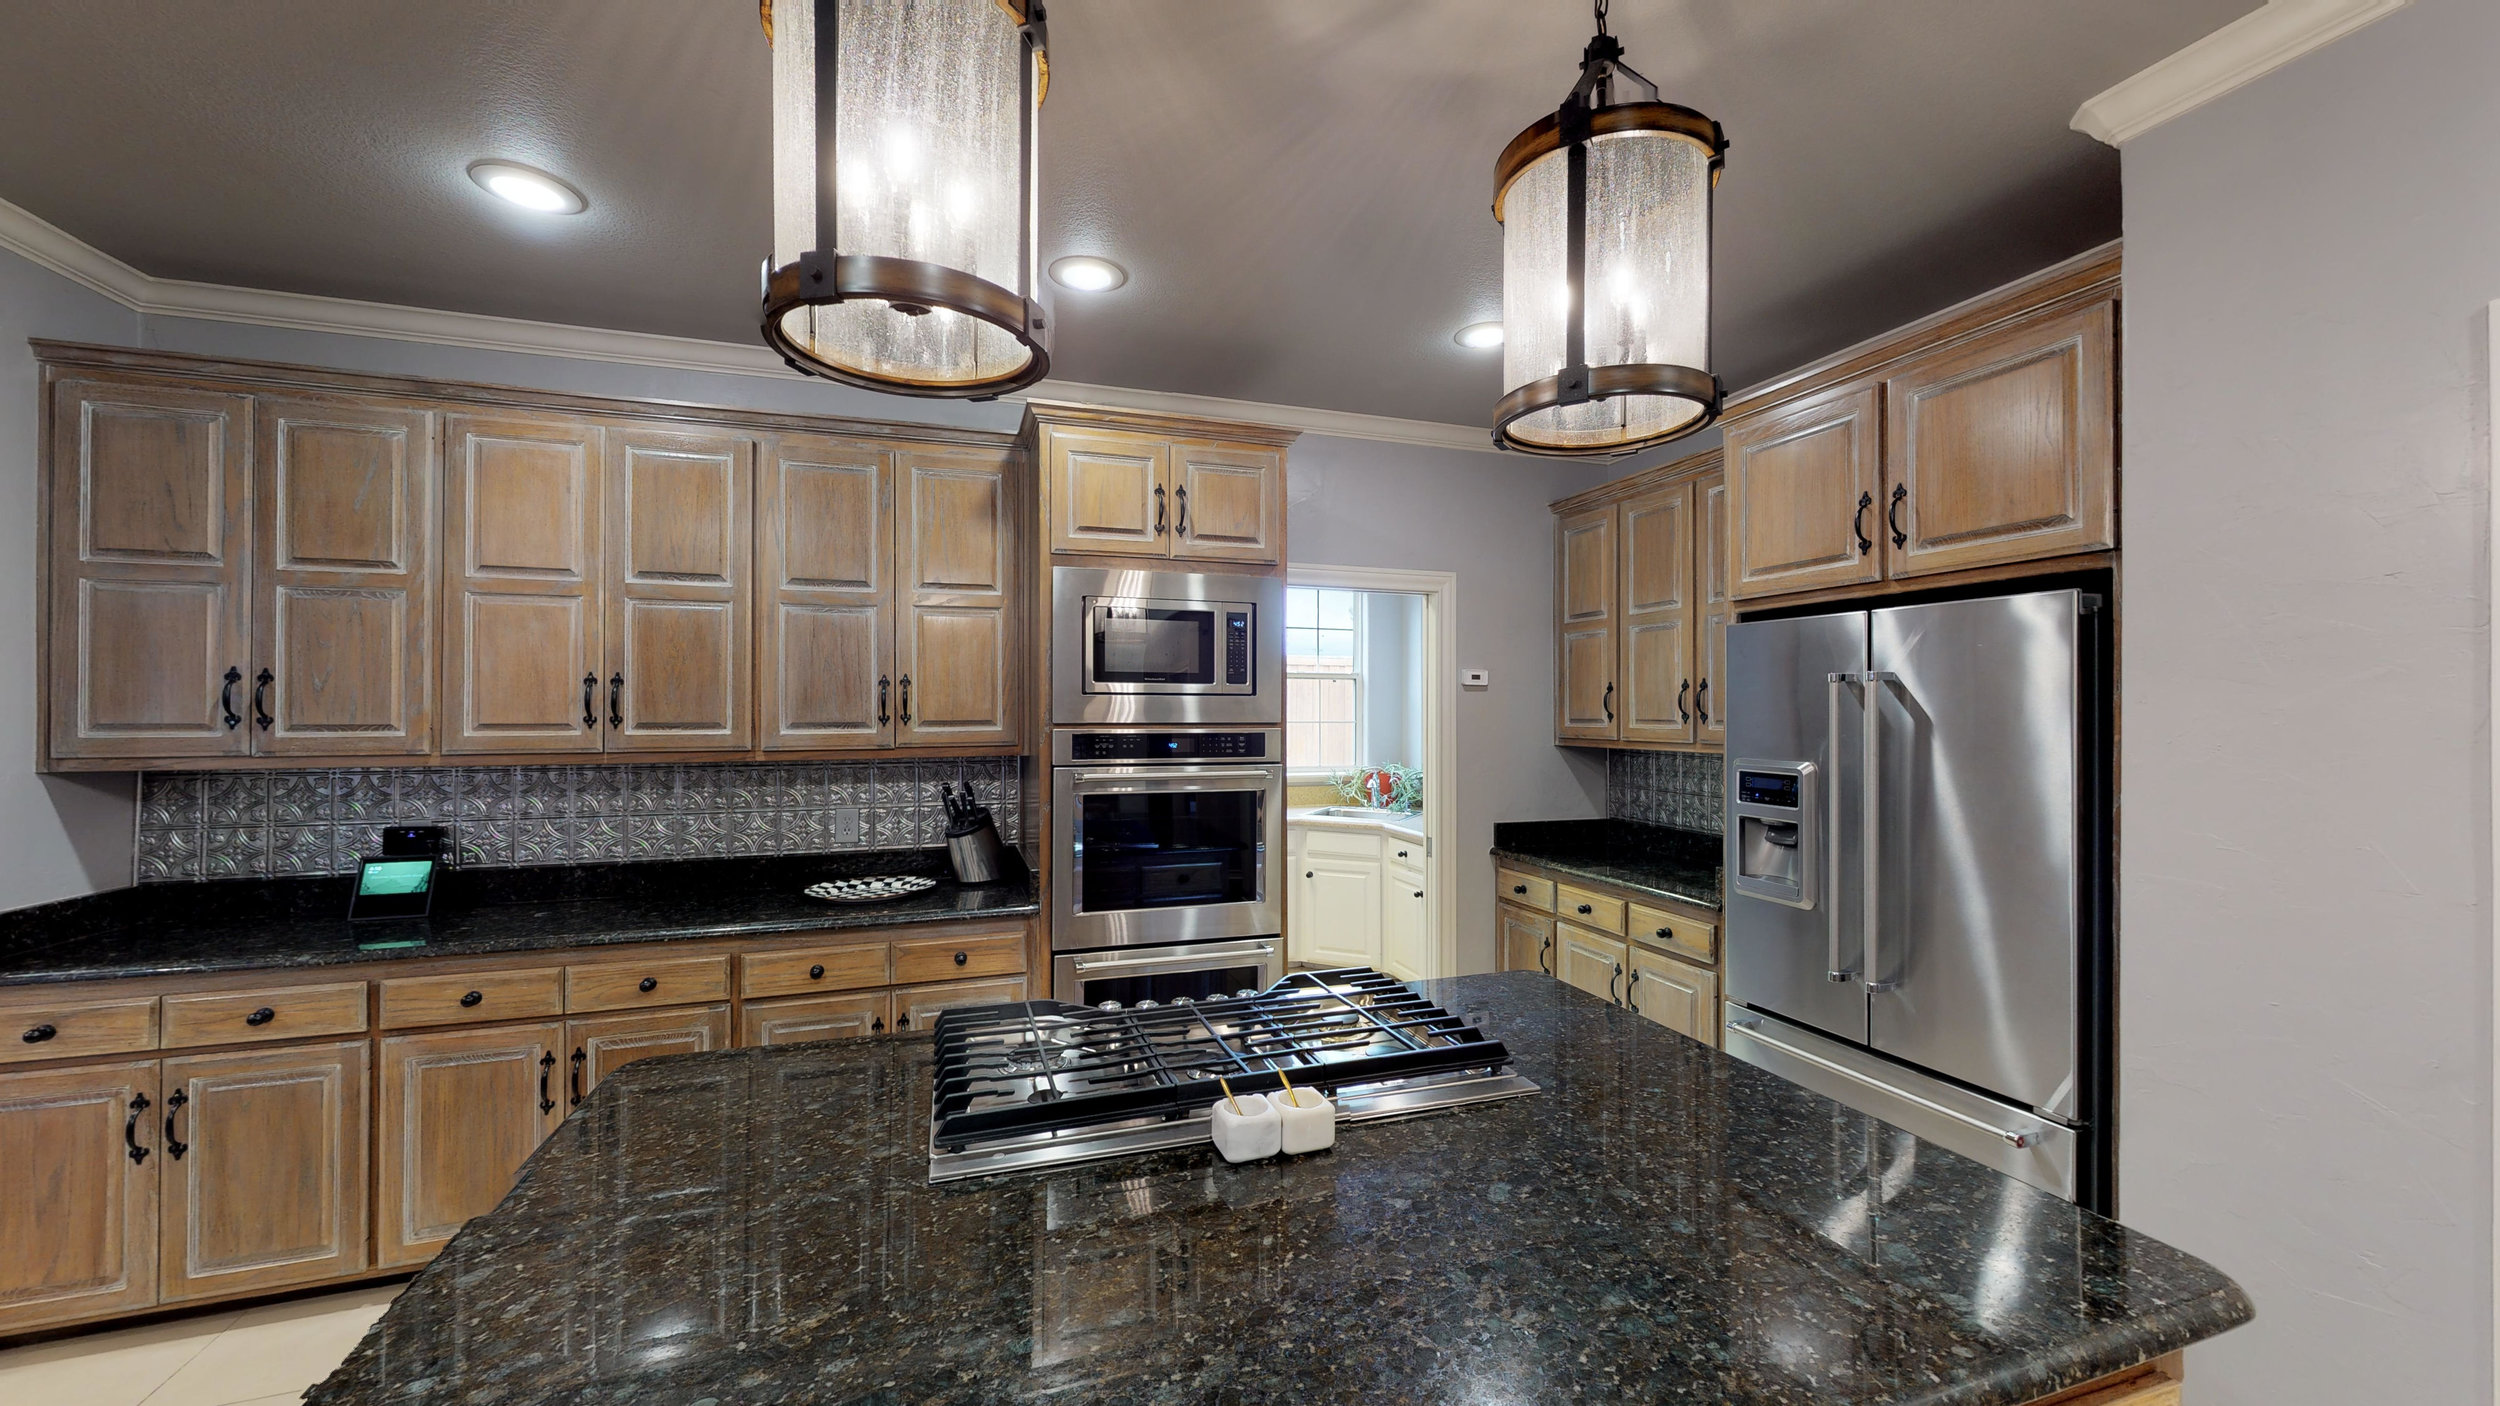 4502-Ashville-Place-Amarillo-TX-79119-Kitchen-4.jpg